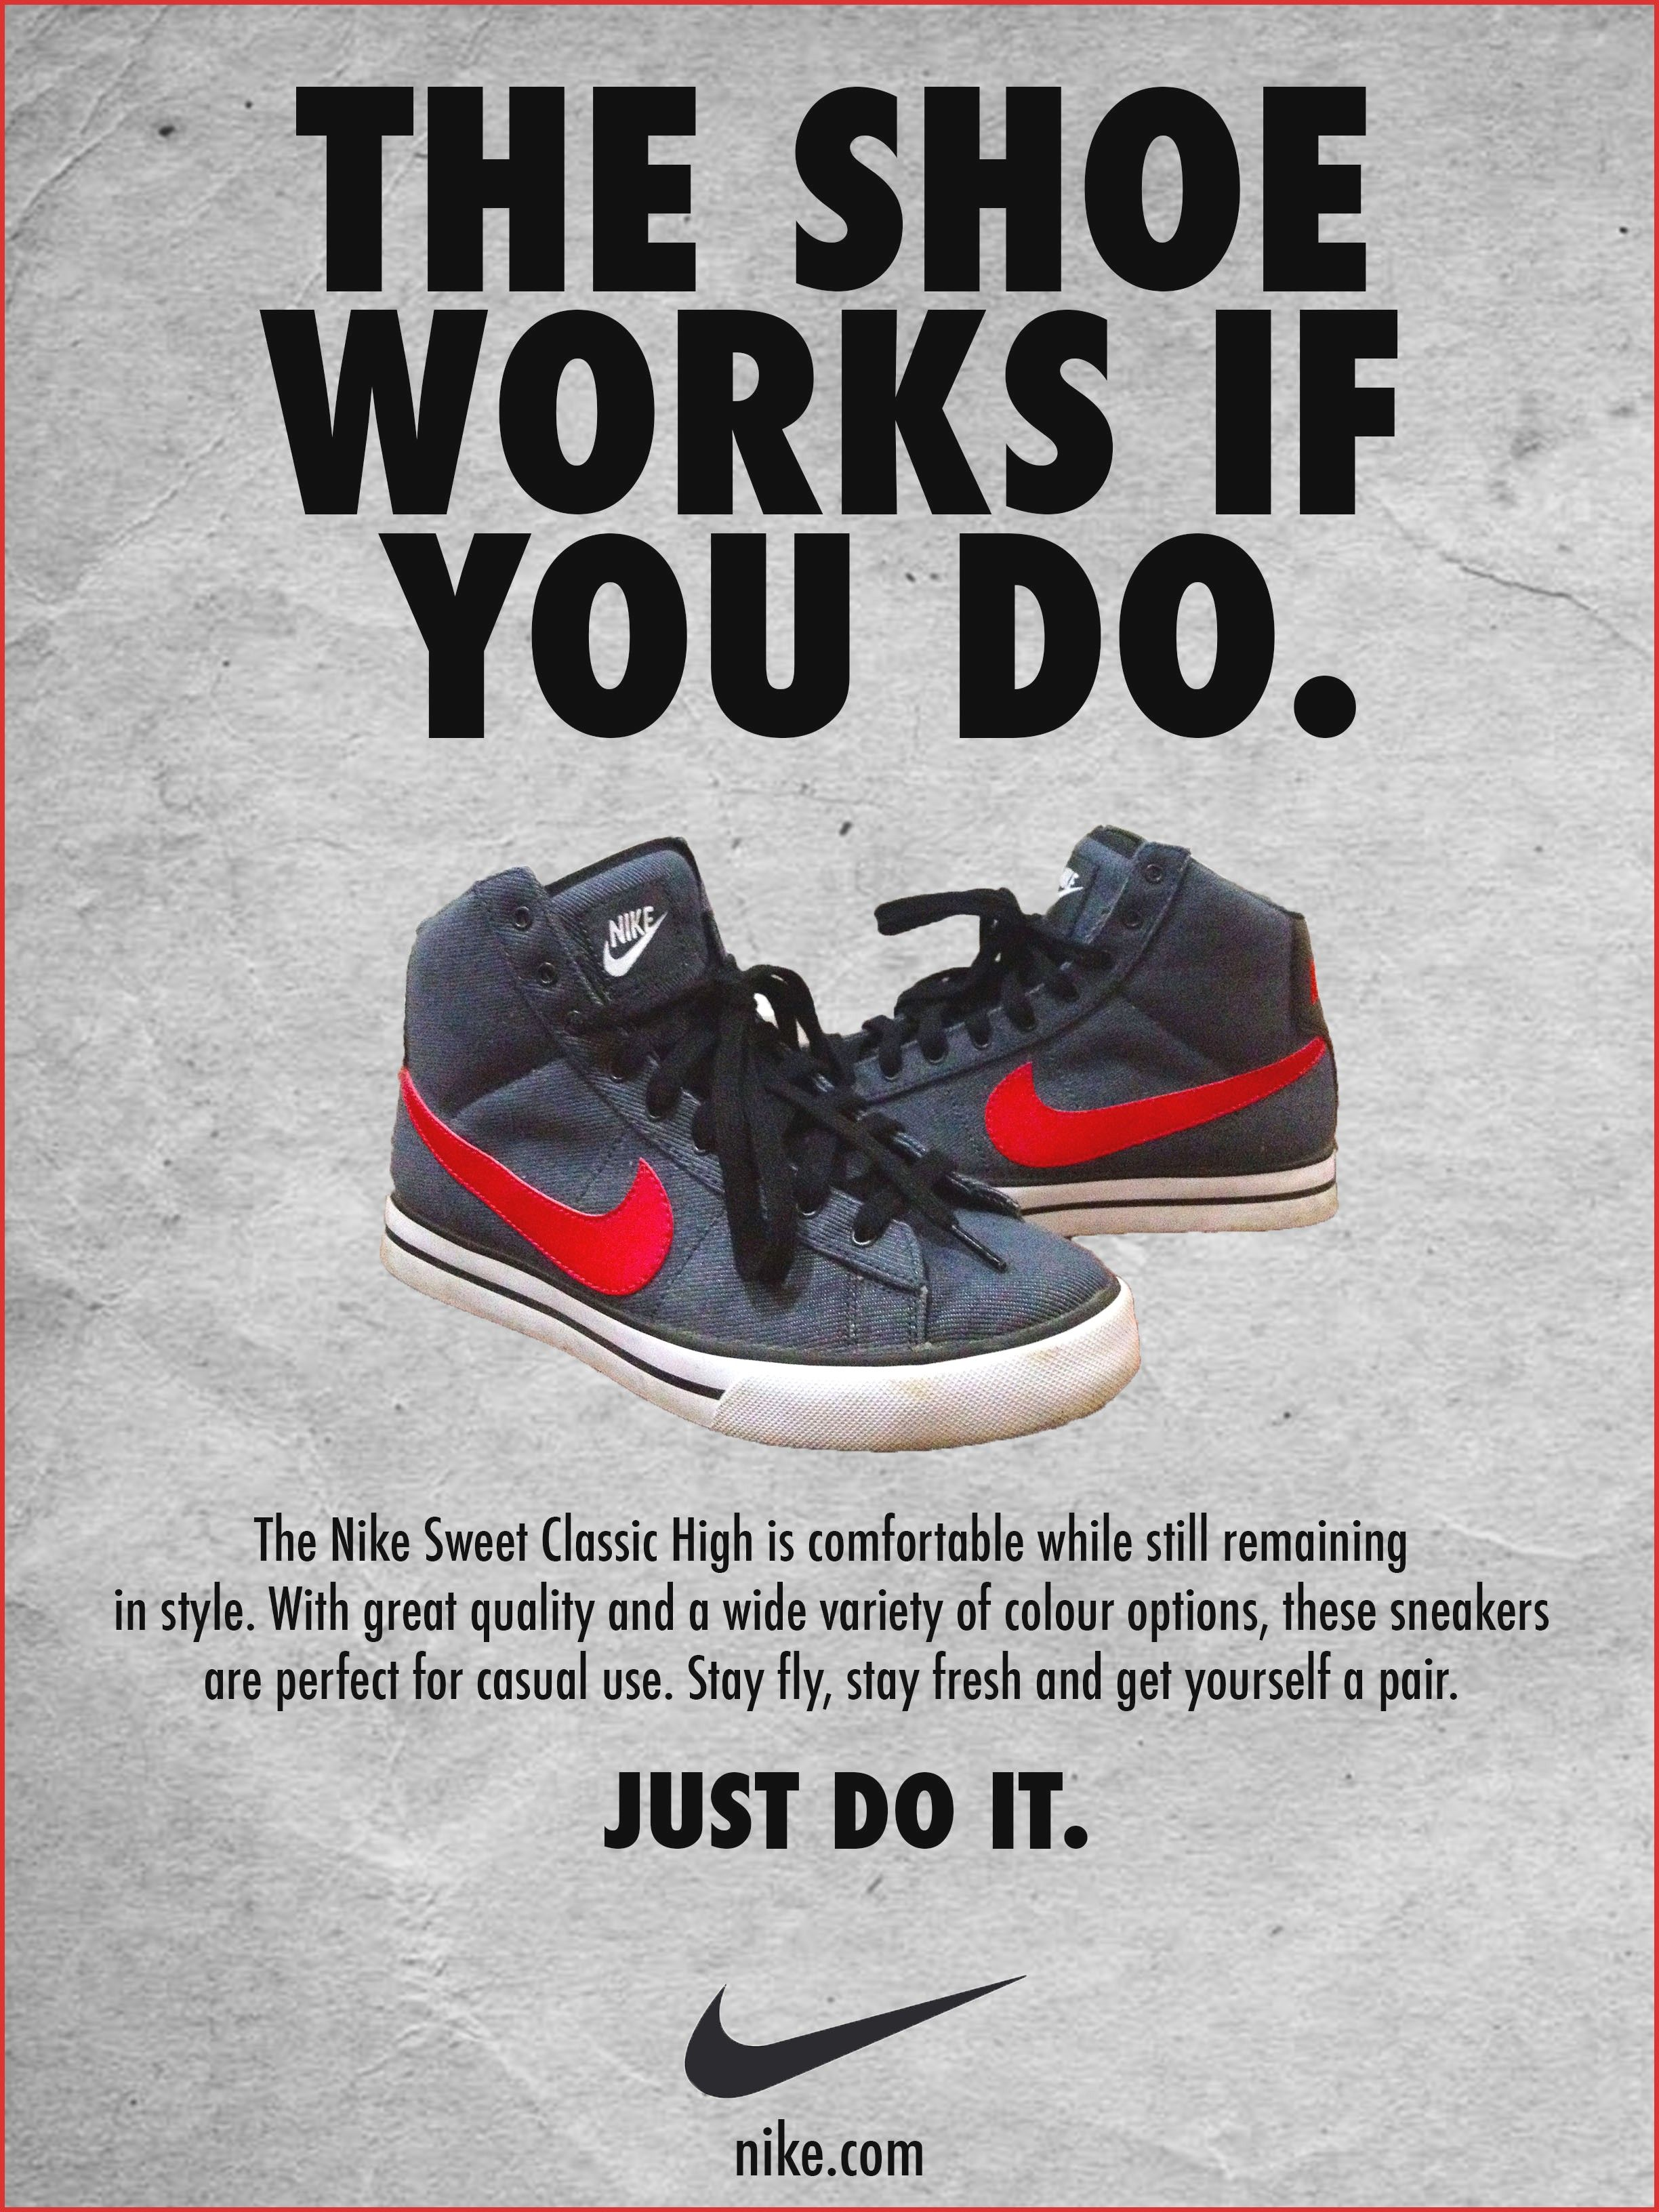 nike-trainer-one-the-ultimate-quick-fix.jpg 600×813 pixels | Gym and health  | Pinterest | Nike trainers